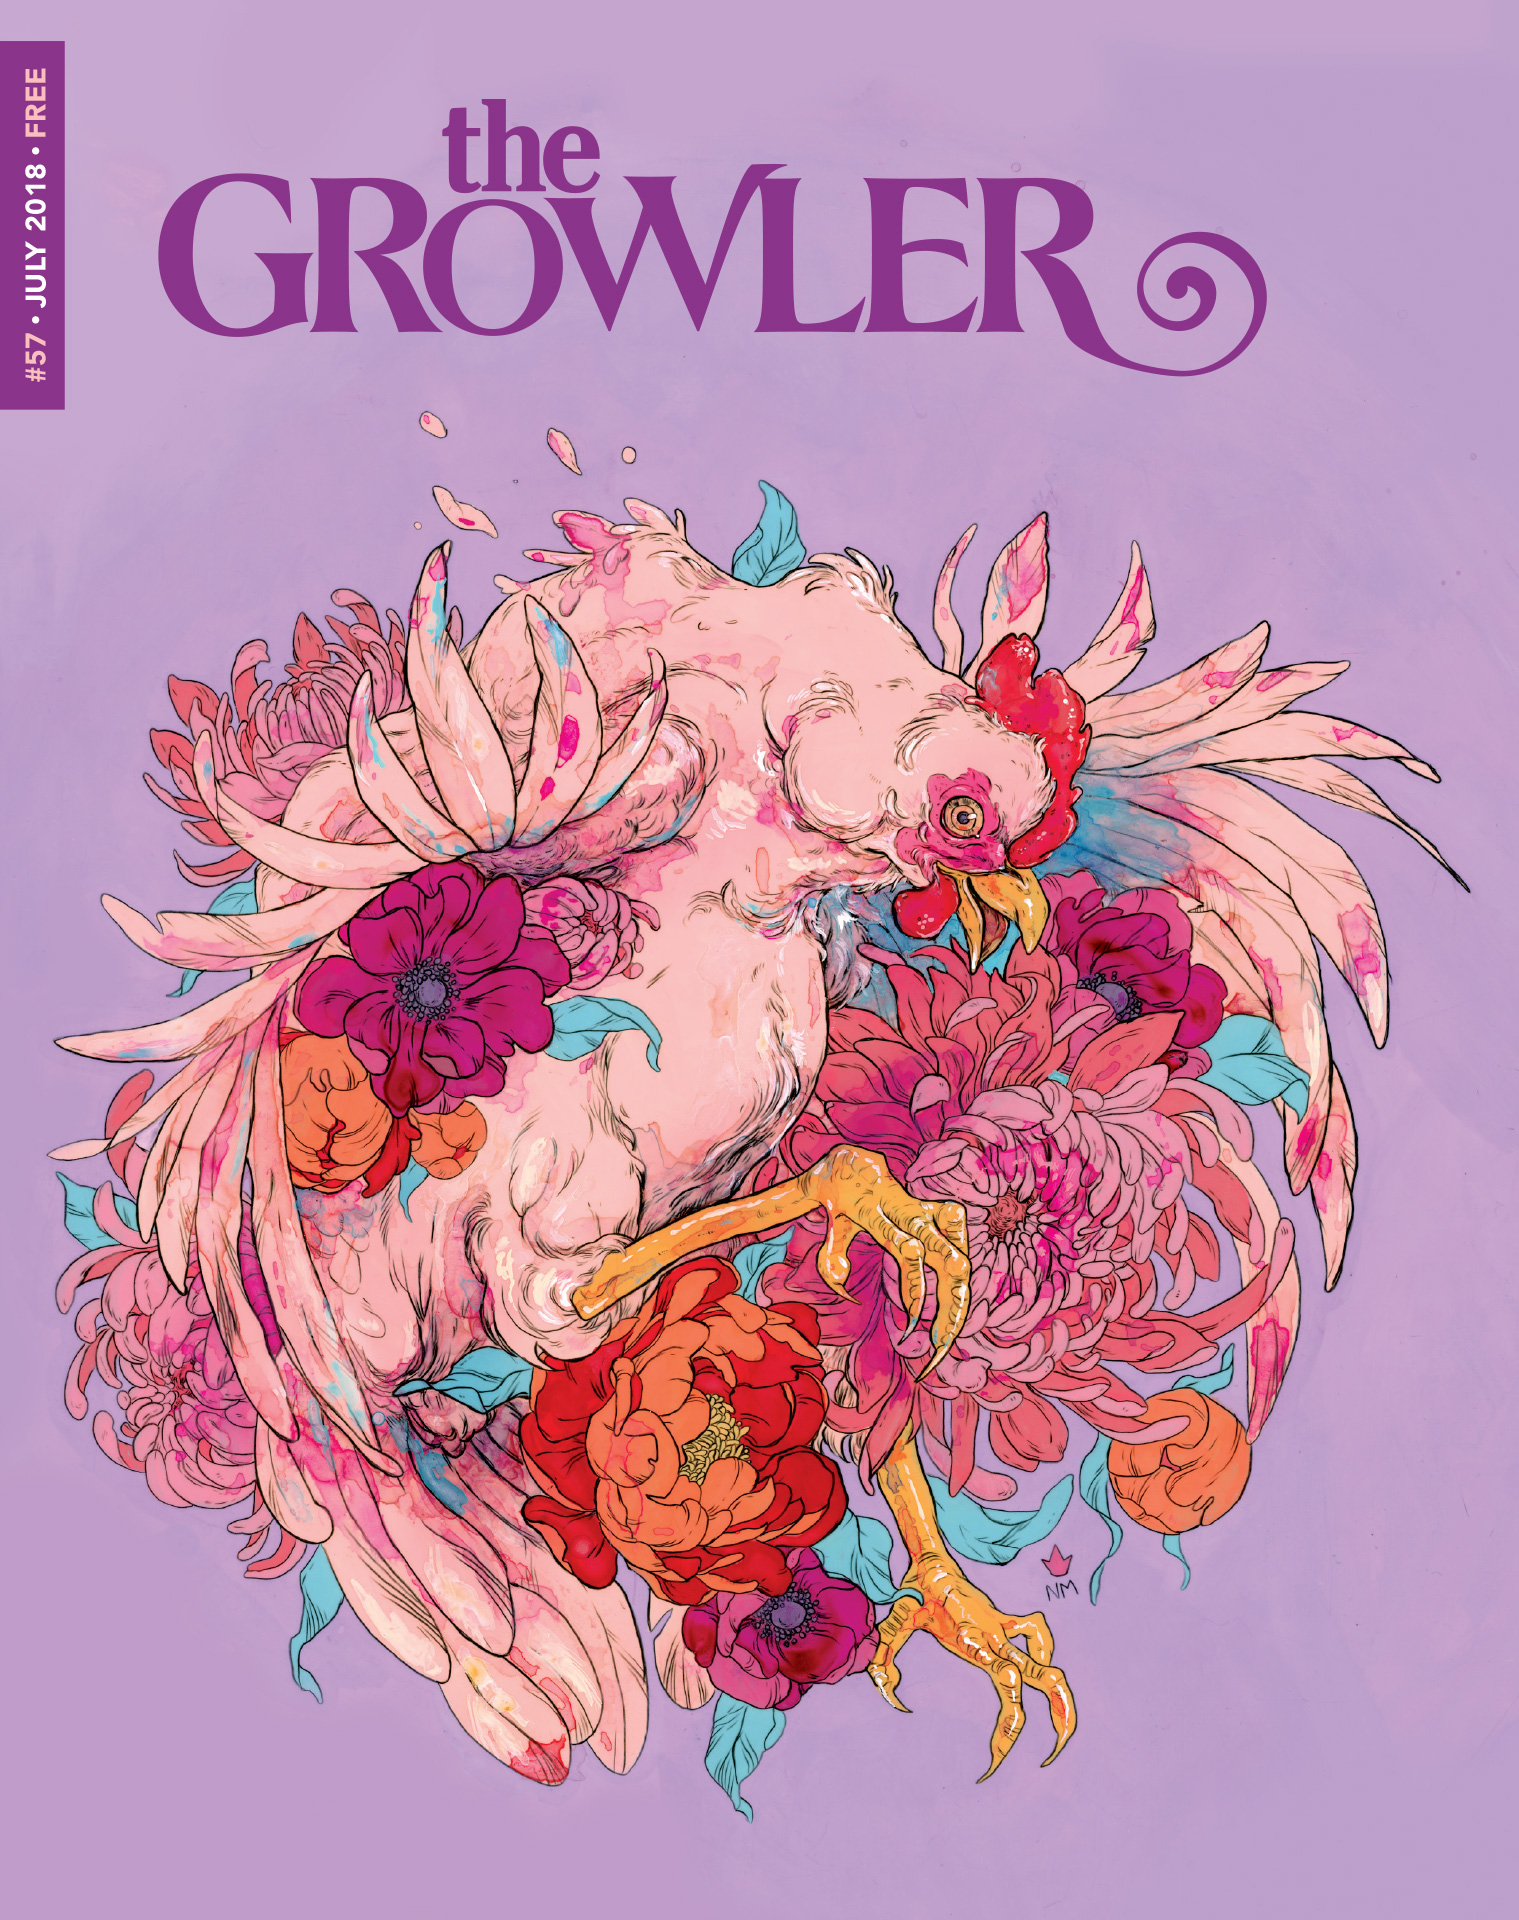 The Growler Issue 57 cover art // Art by Niky Motekallem